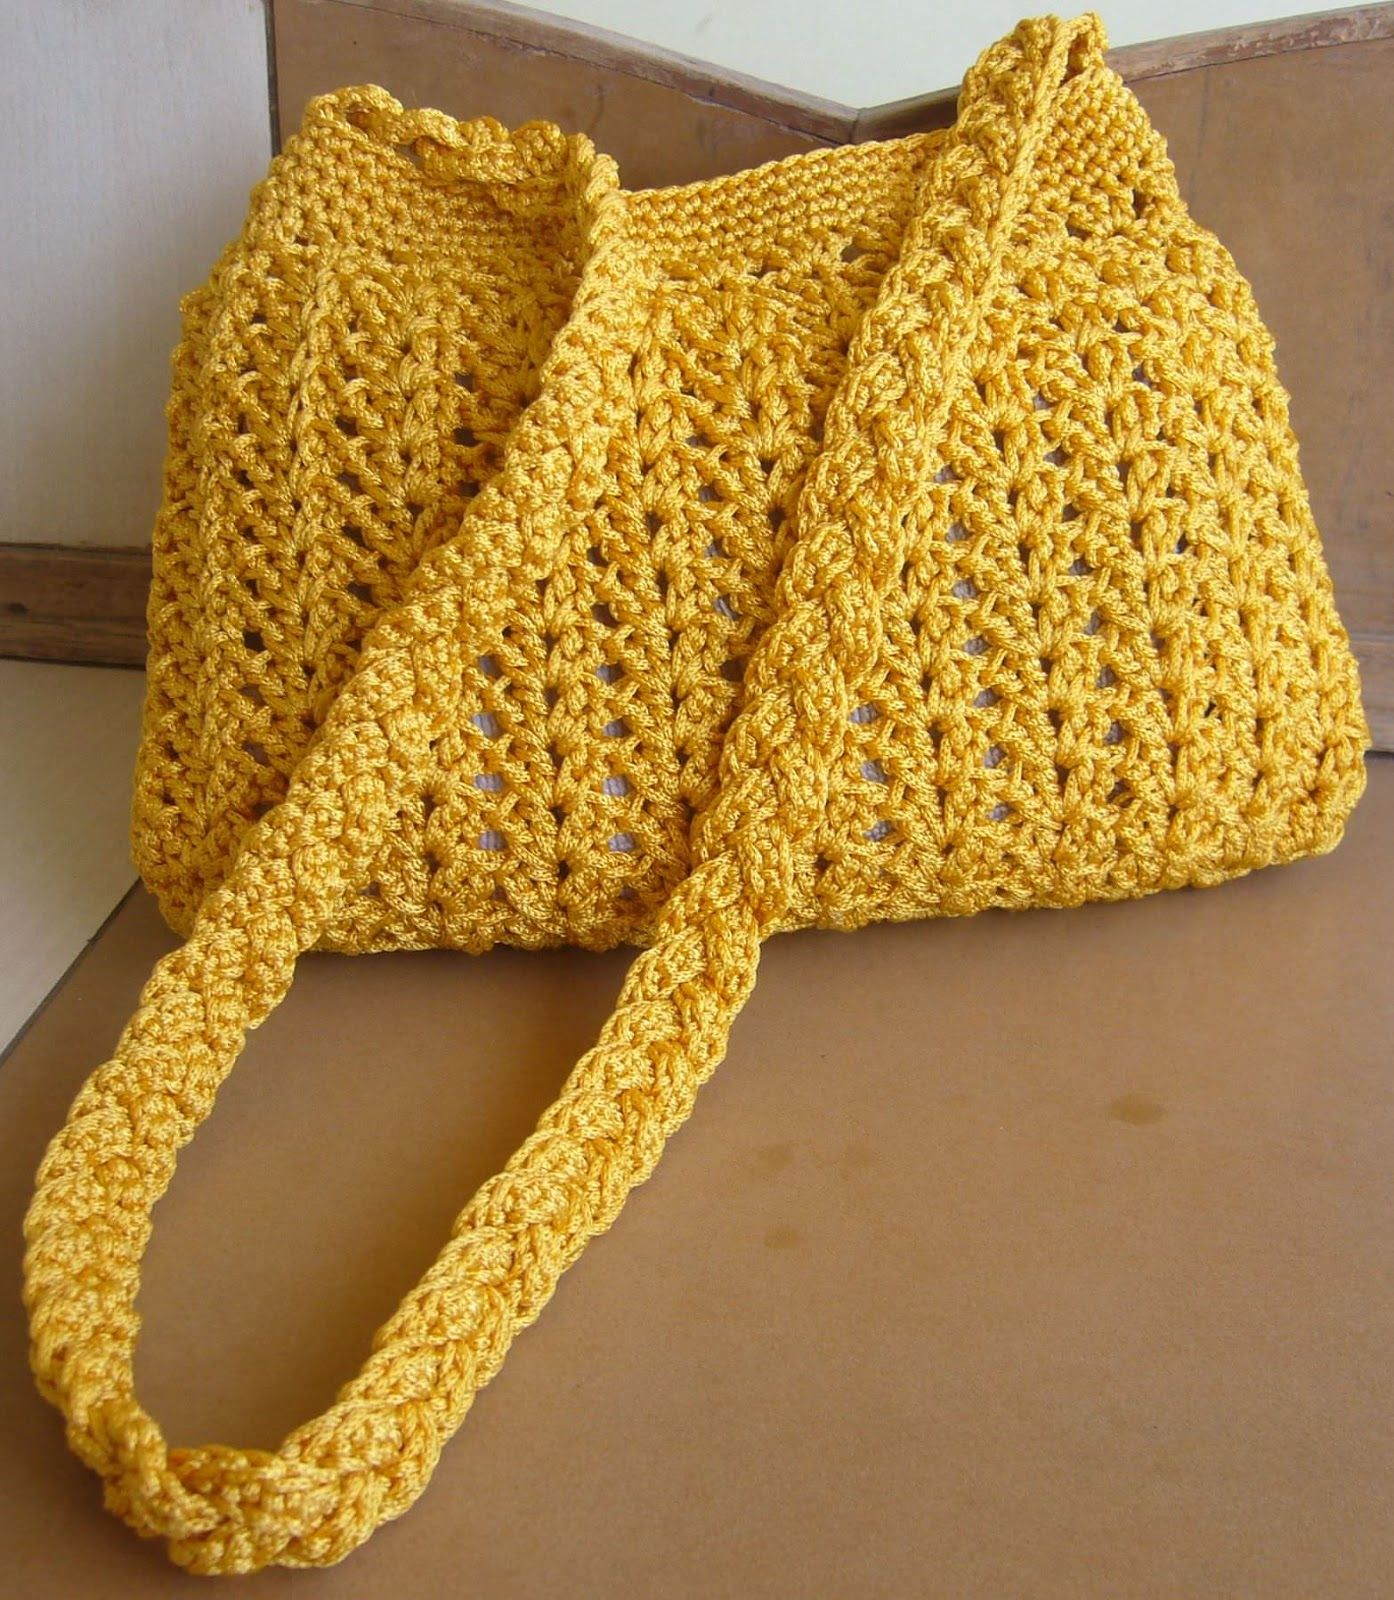 Crochetkari golden yellow crochet purse with link to free pattern crochetkari golden yellow crochet purse with link to free pattern nordstrom bag bankloansurffo Gallery